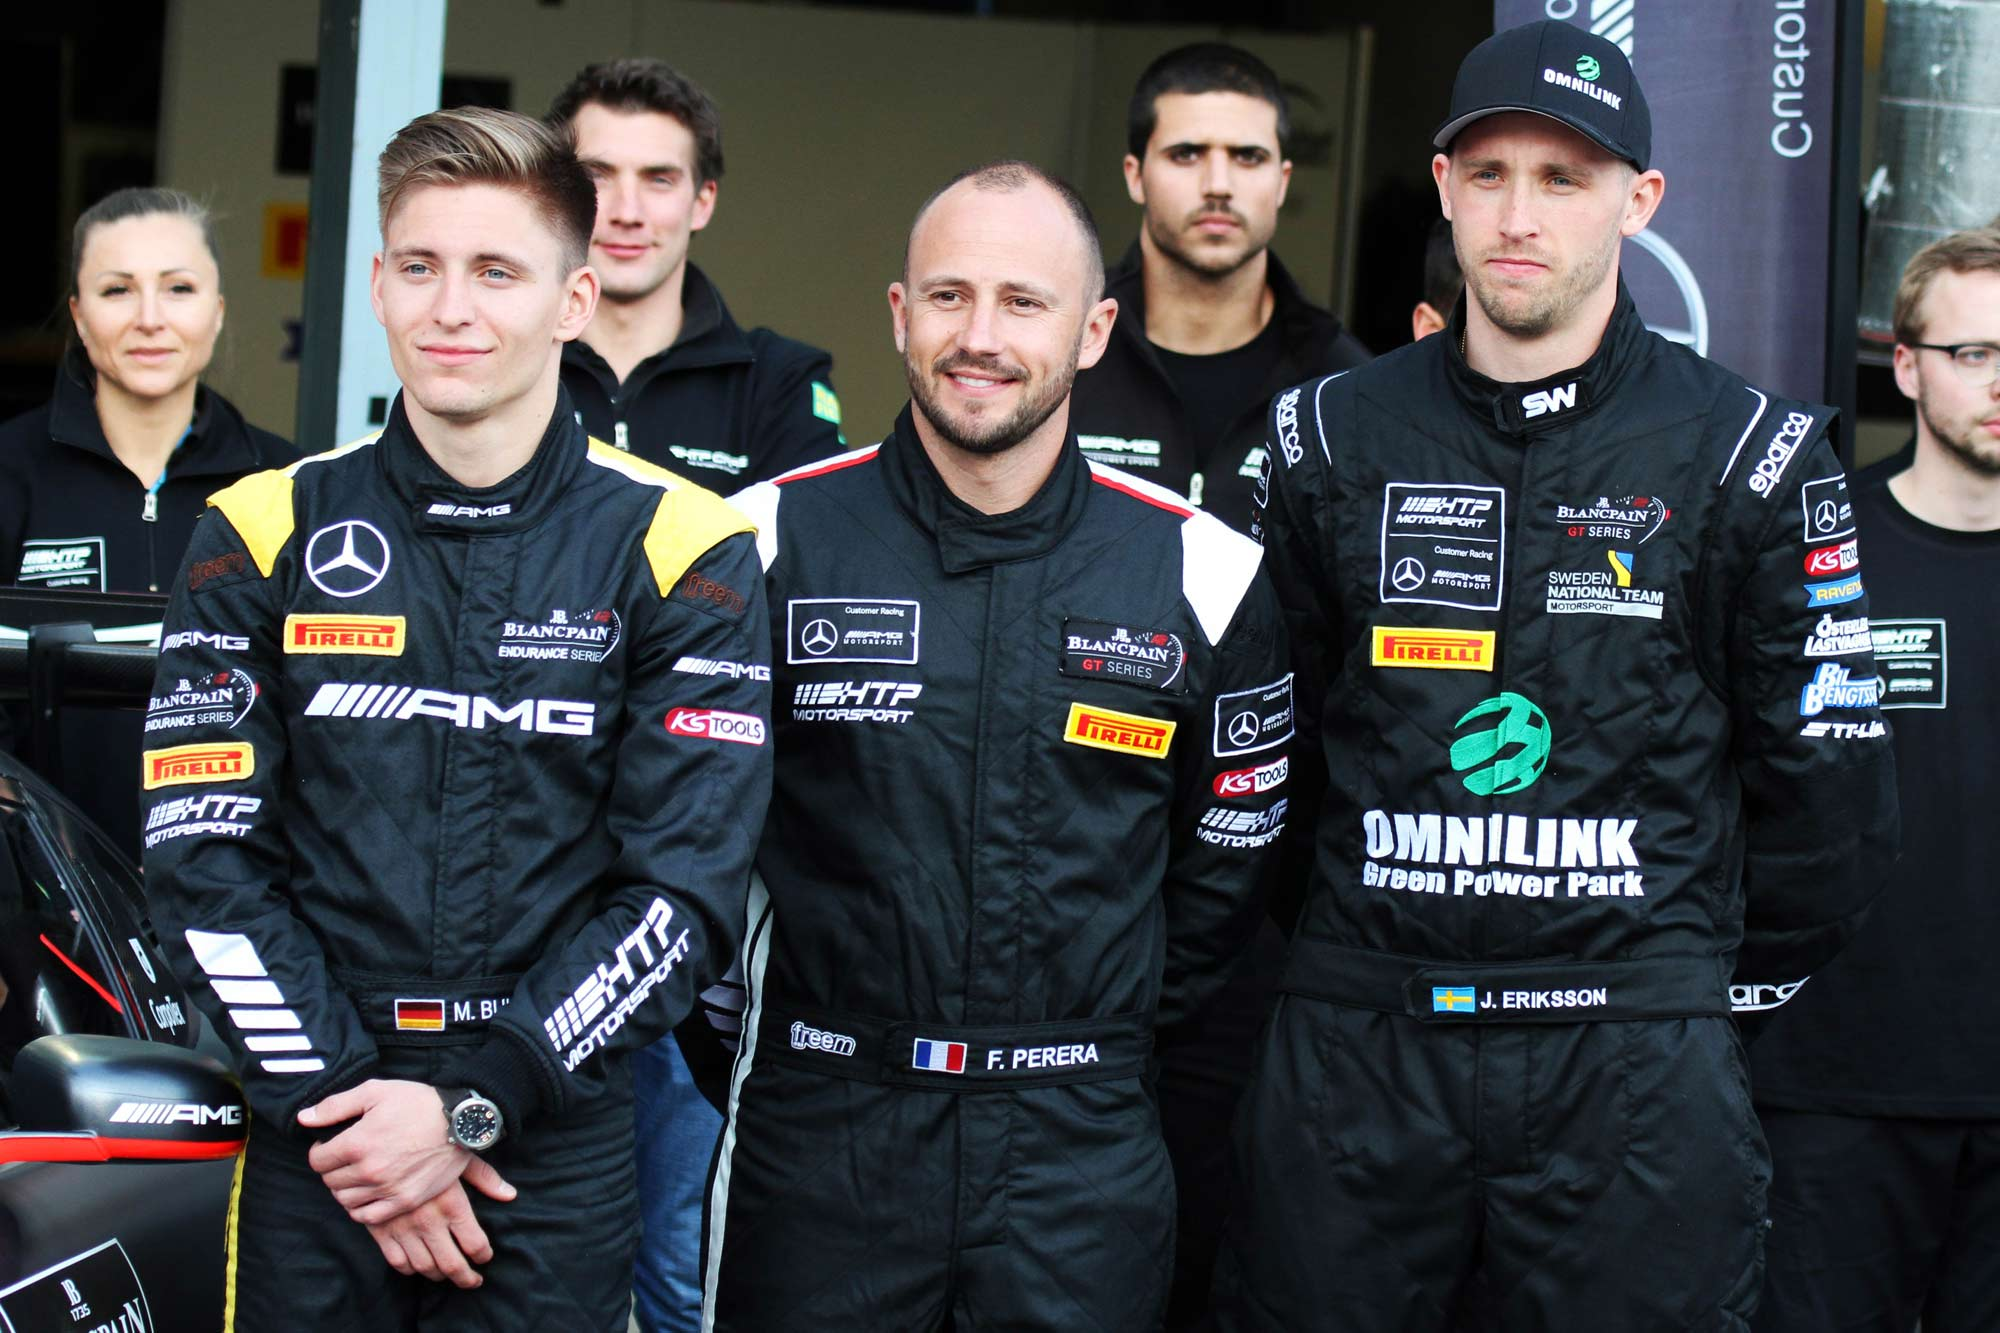 Jimmy ties up with Blancpain GT leaders for Endurance Cup campaign